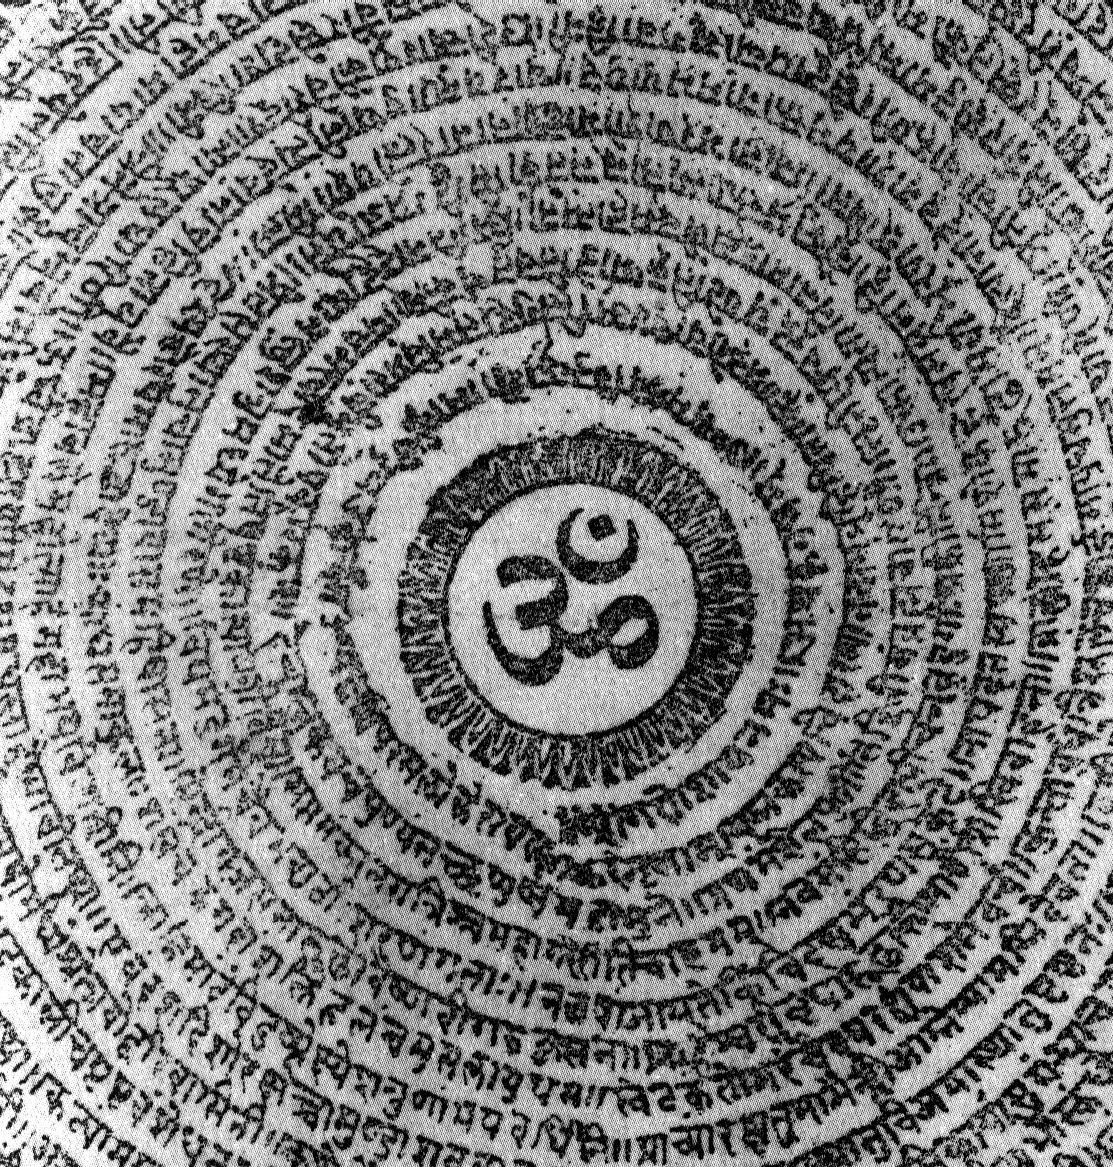 Kundalini What Do U Reckon Sanskrit Om And Consciousness